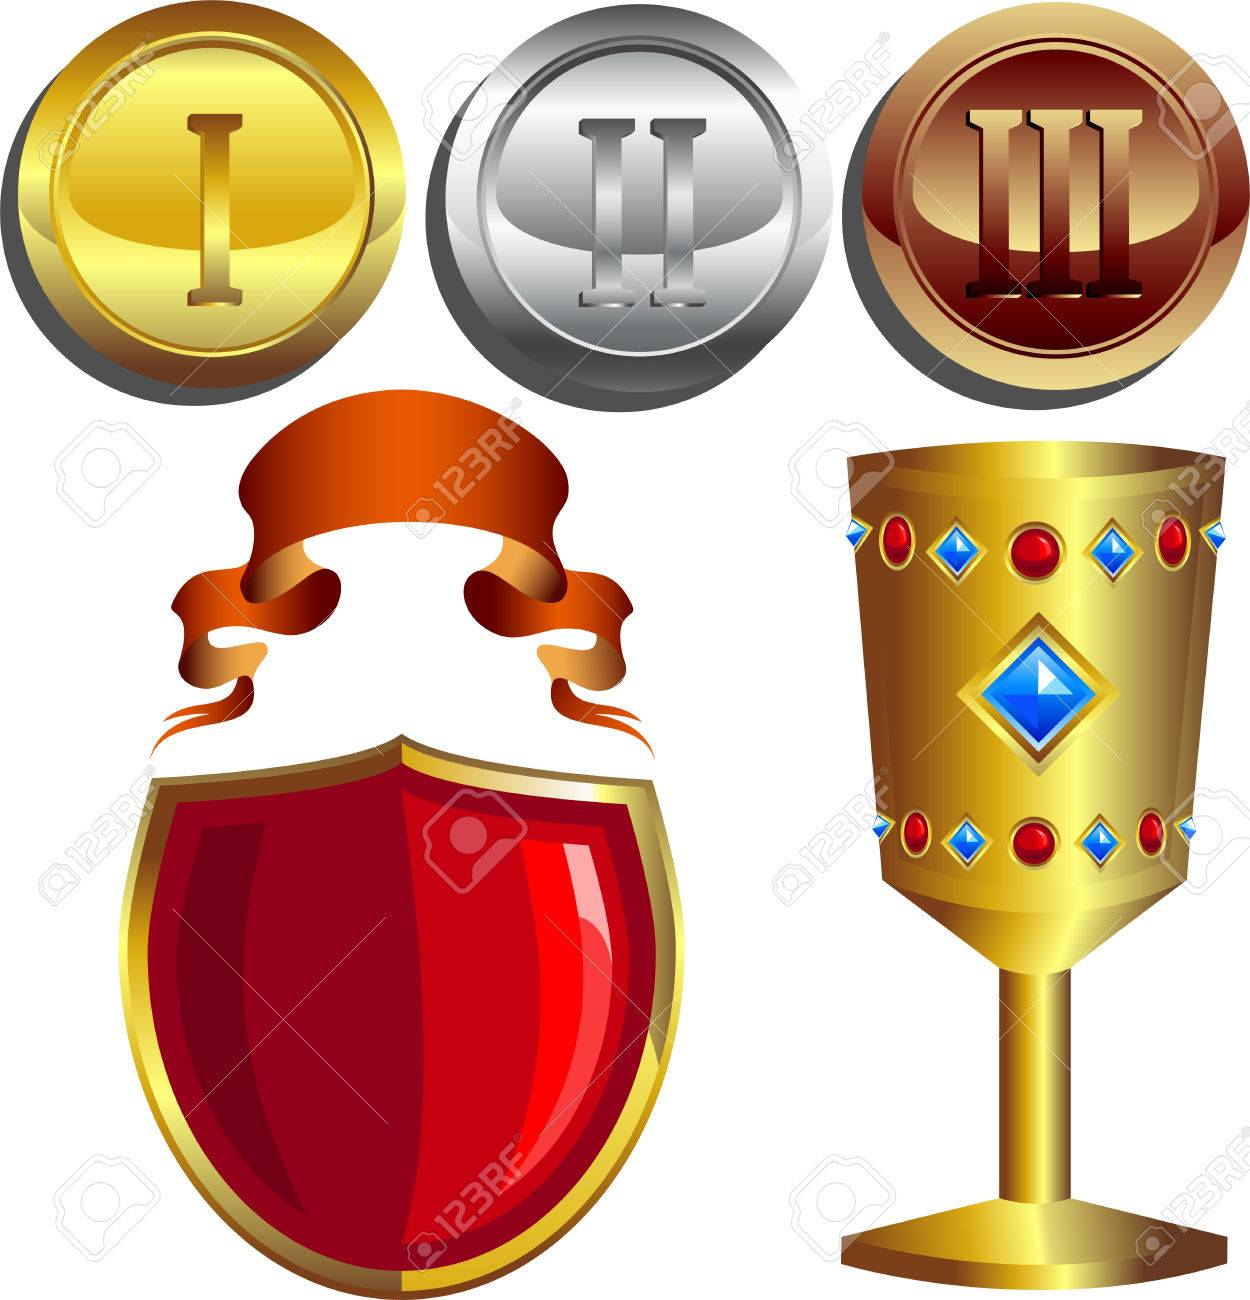 Rewards, gold, silver and bronze medals, cup, shield and banner